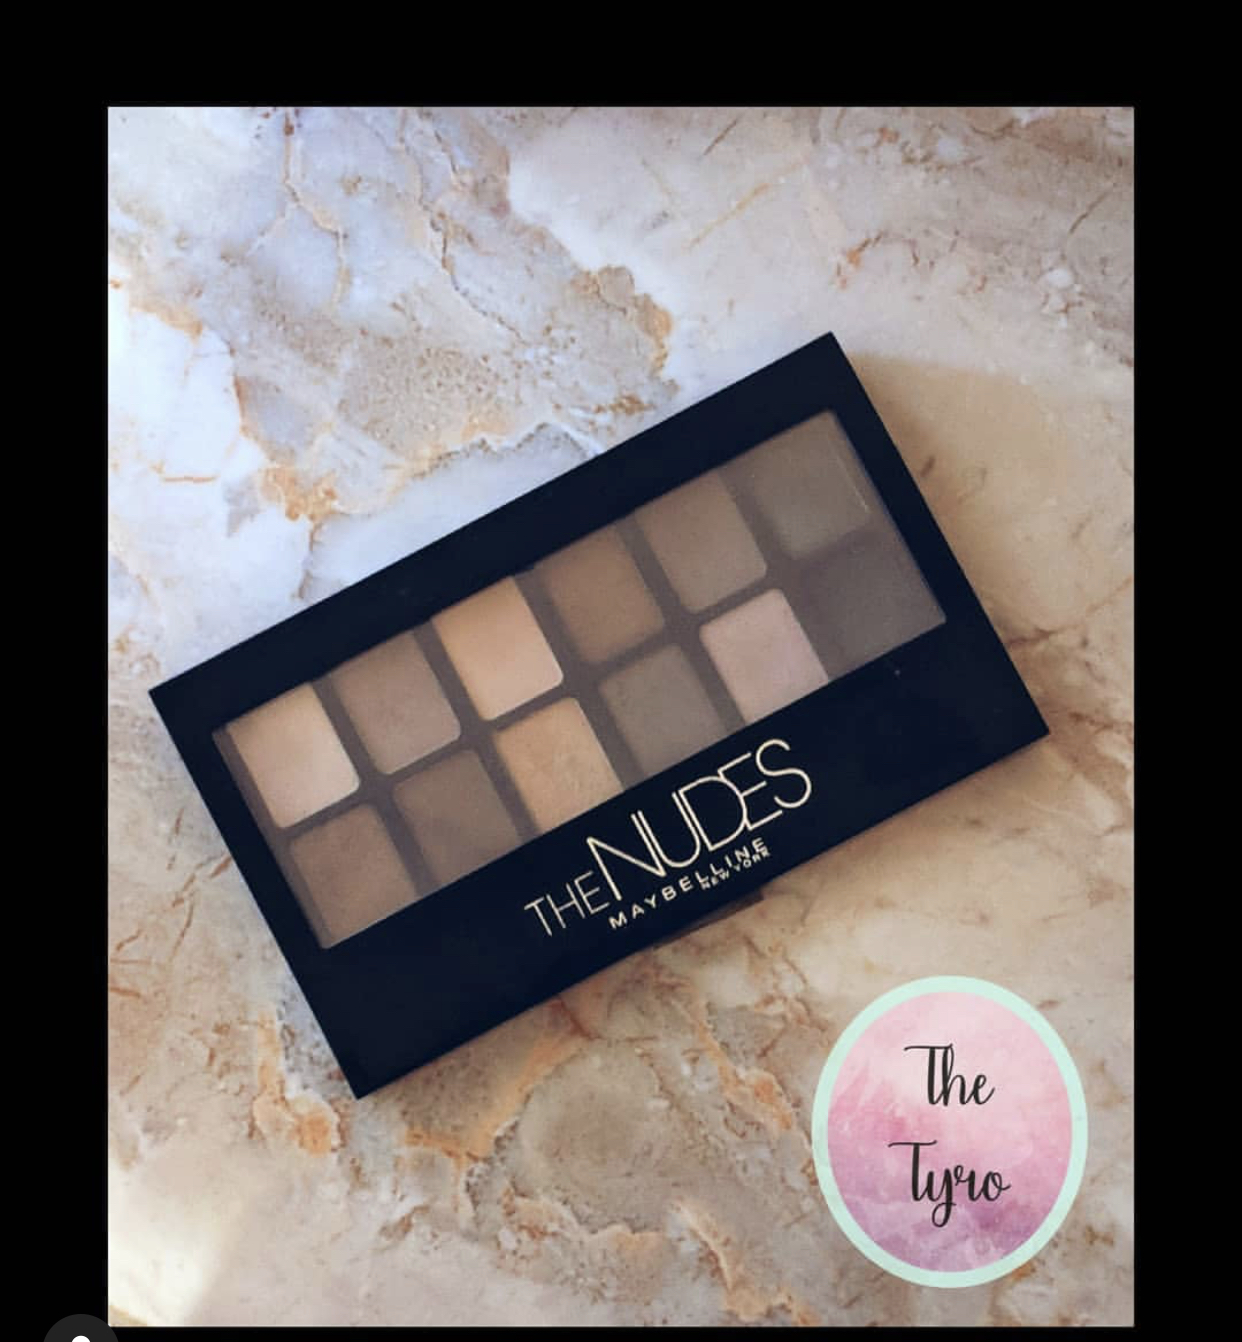 Maybelline New York The Nudes Eyeshadow Palette-Maybelline New York nudes eyeshadow palette-By thetyro